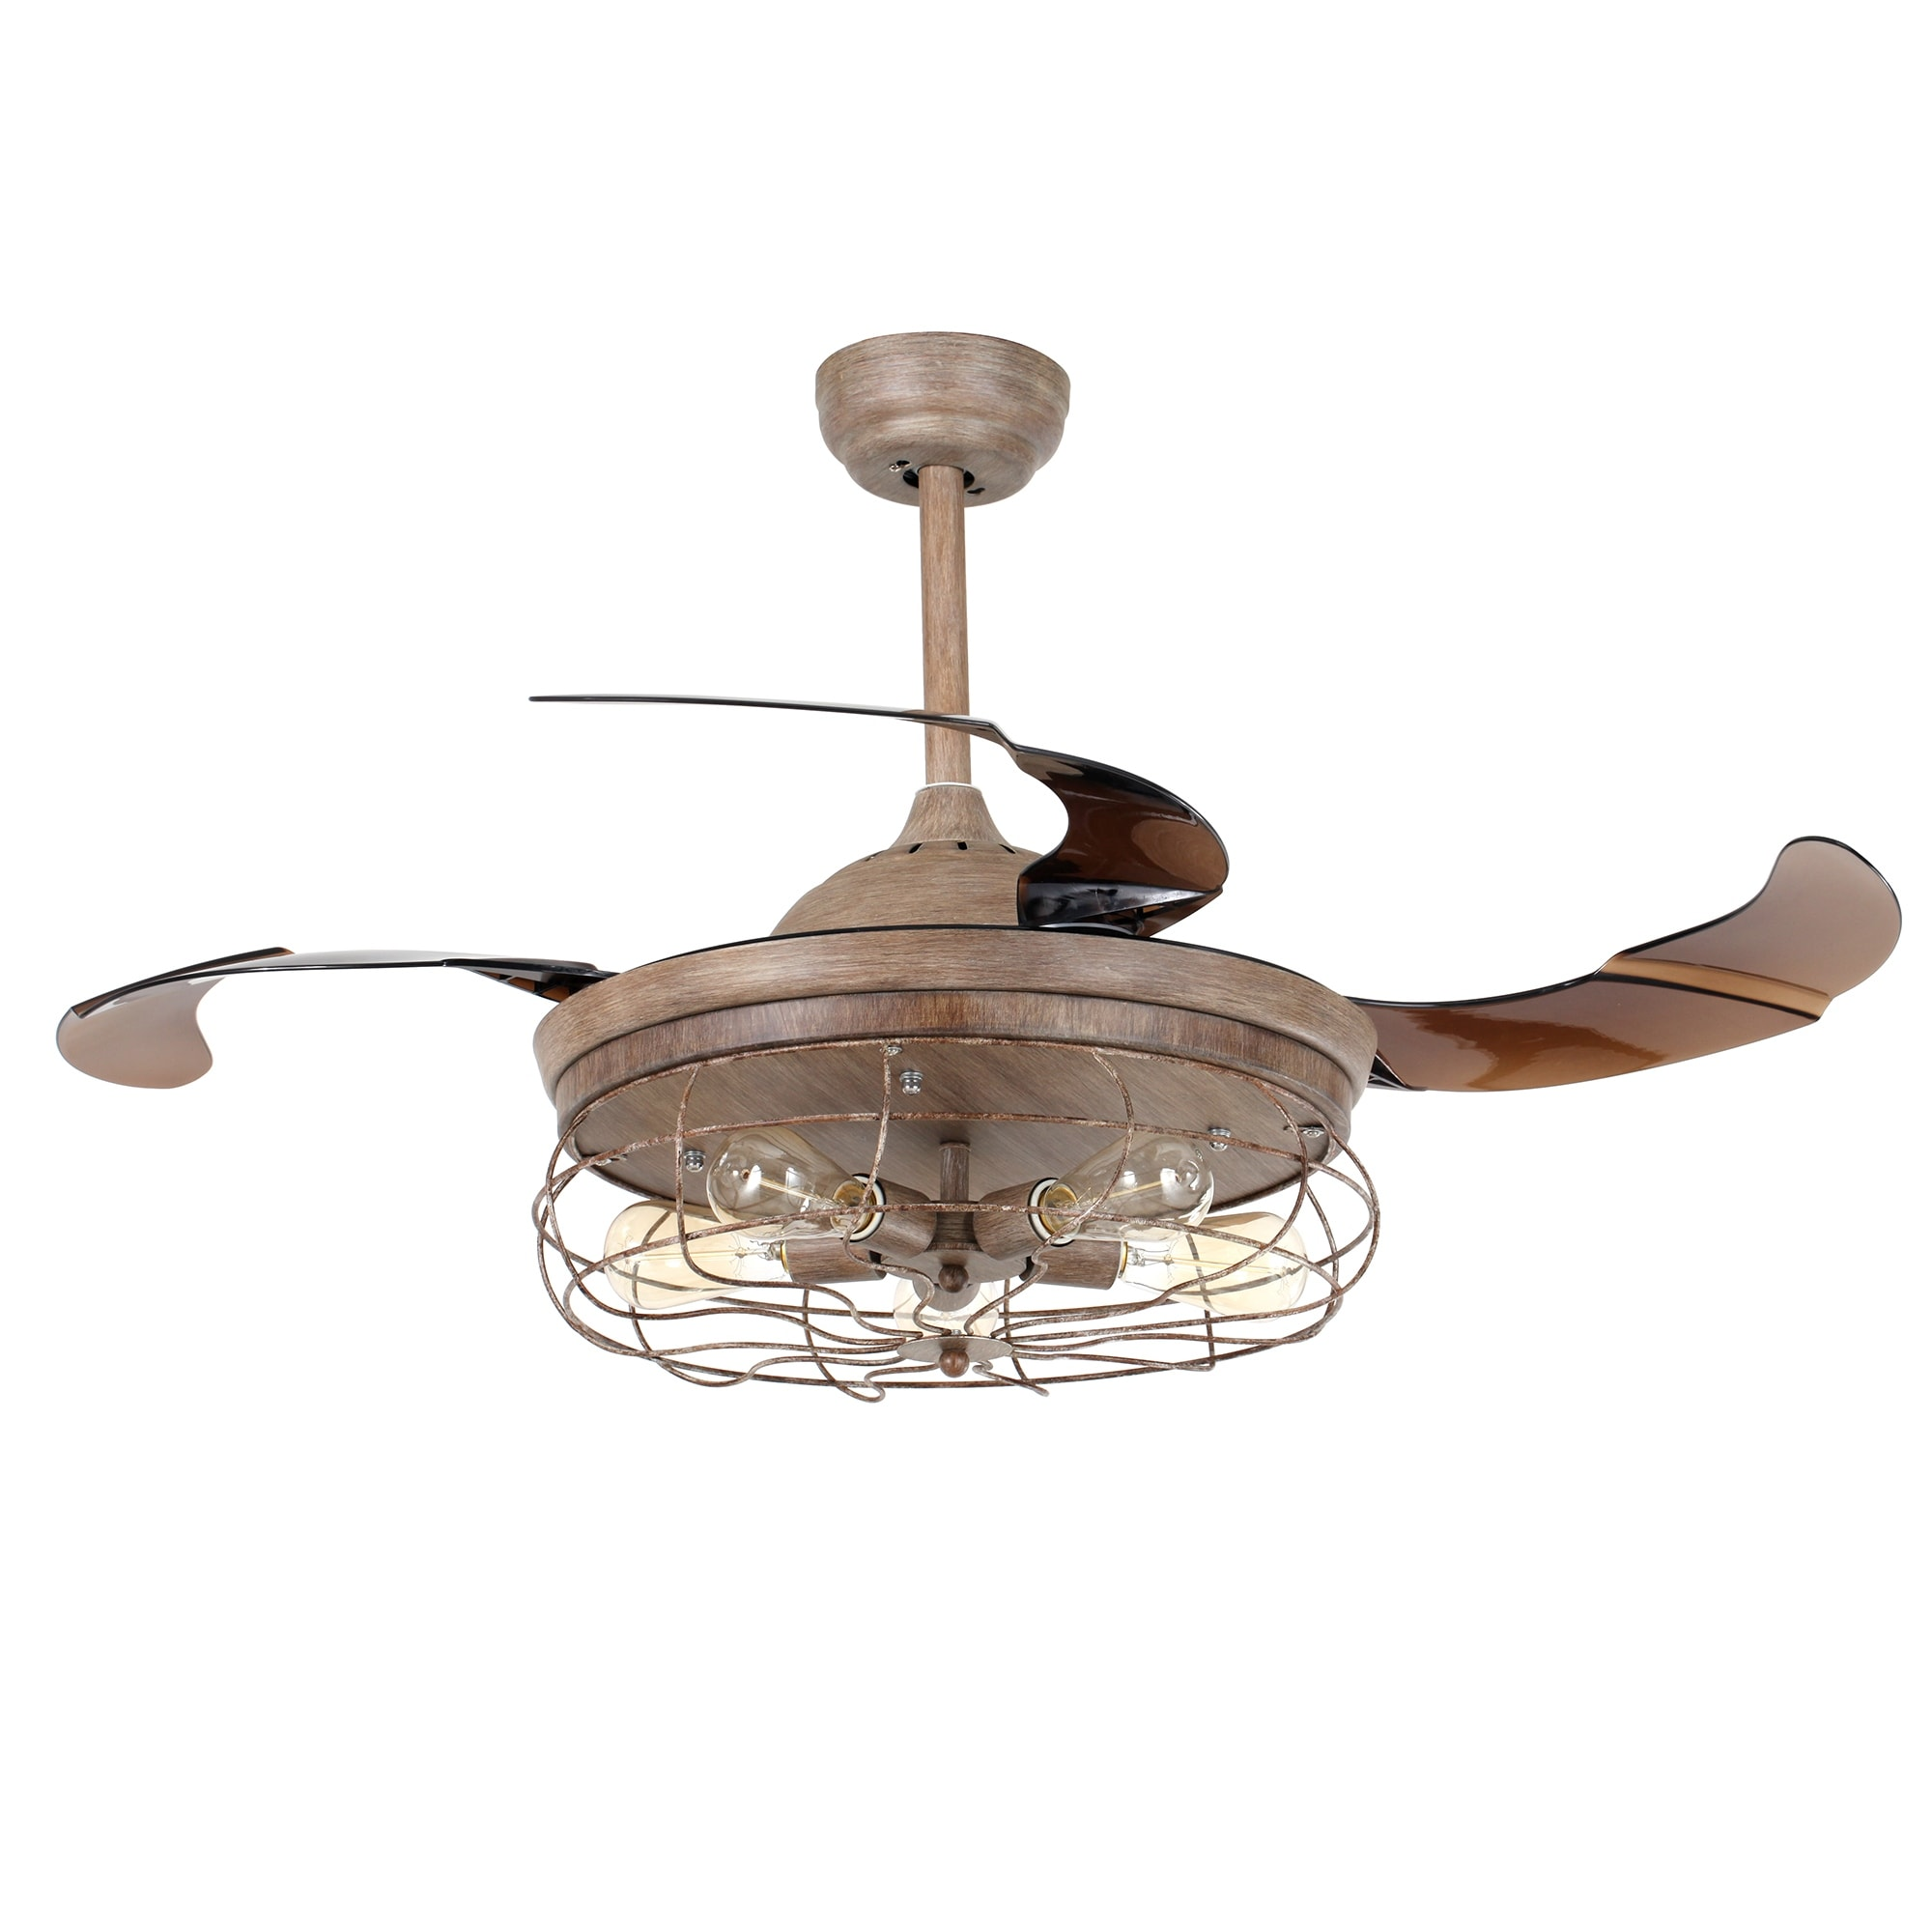 home garden inch modern today fan crystal ceiling led retractable gold blades product free shipping overstock